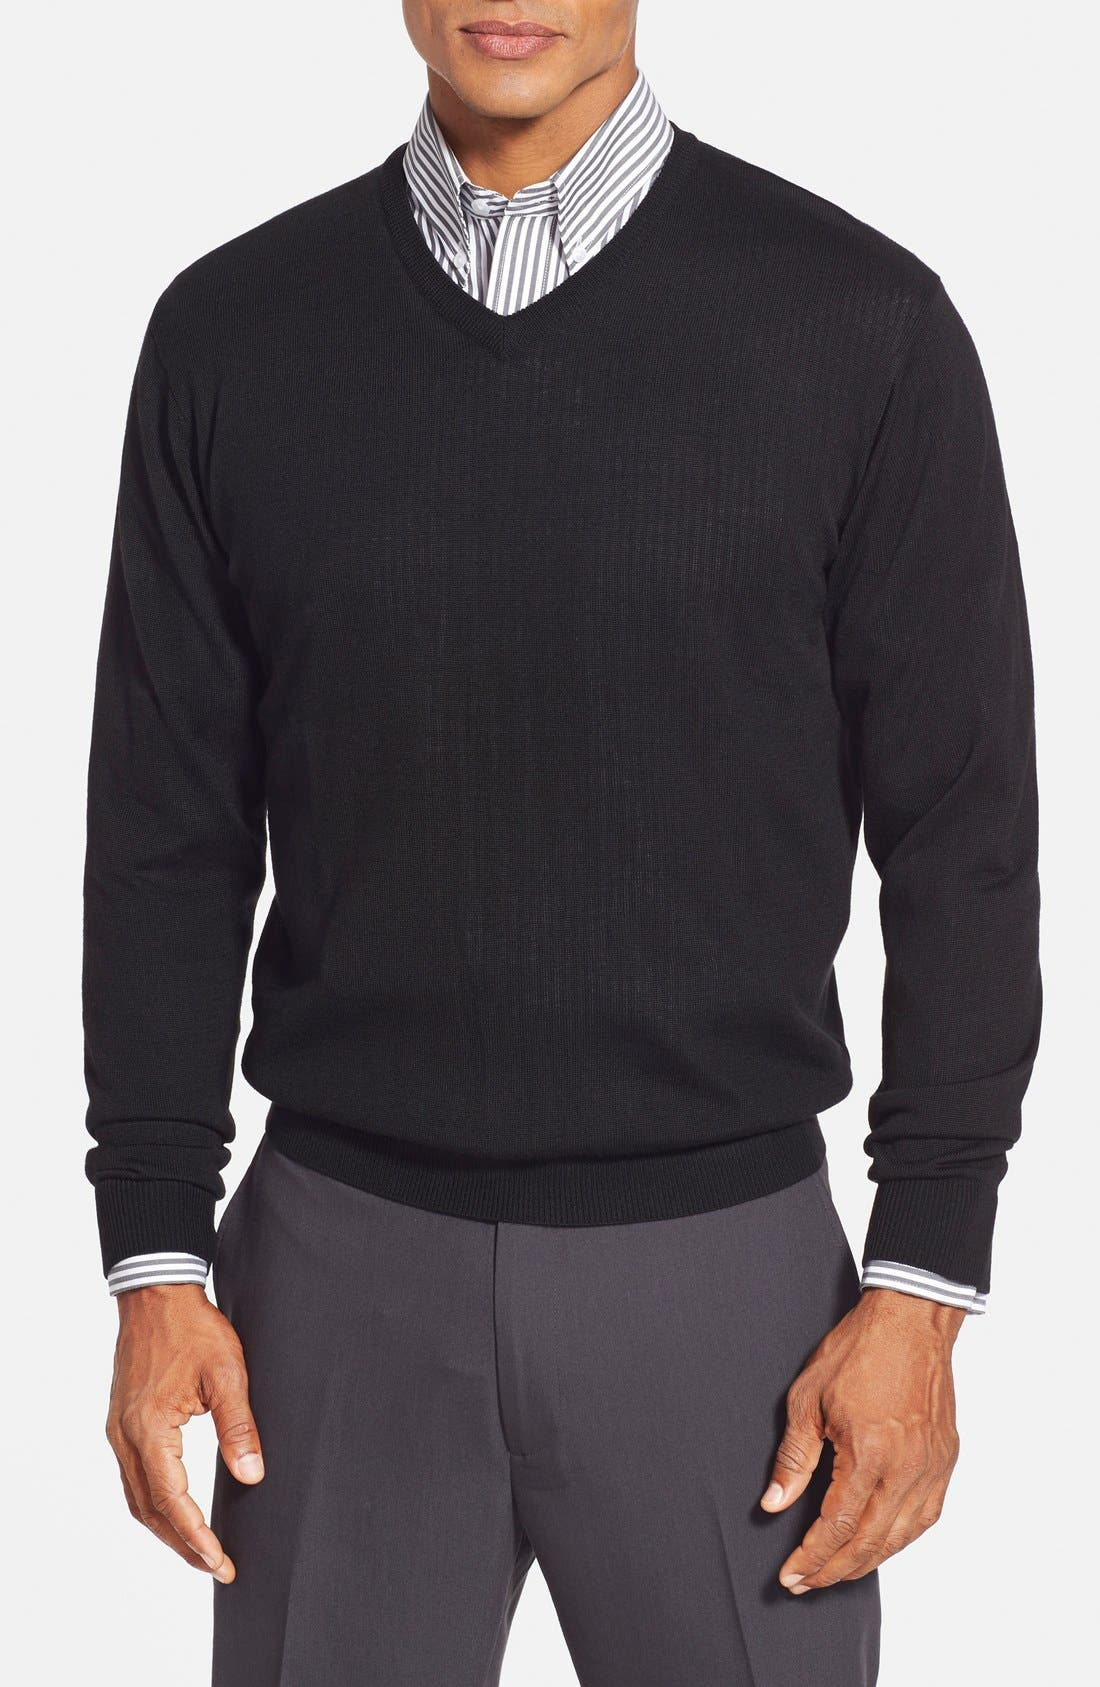 Cutter & Buck 'Douglas' Merino Wool Blend V-Neck Sweater (Online Only)